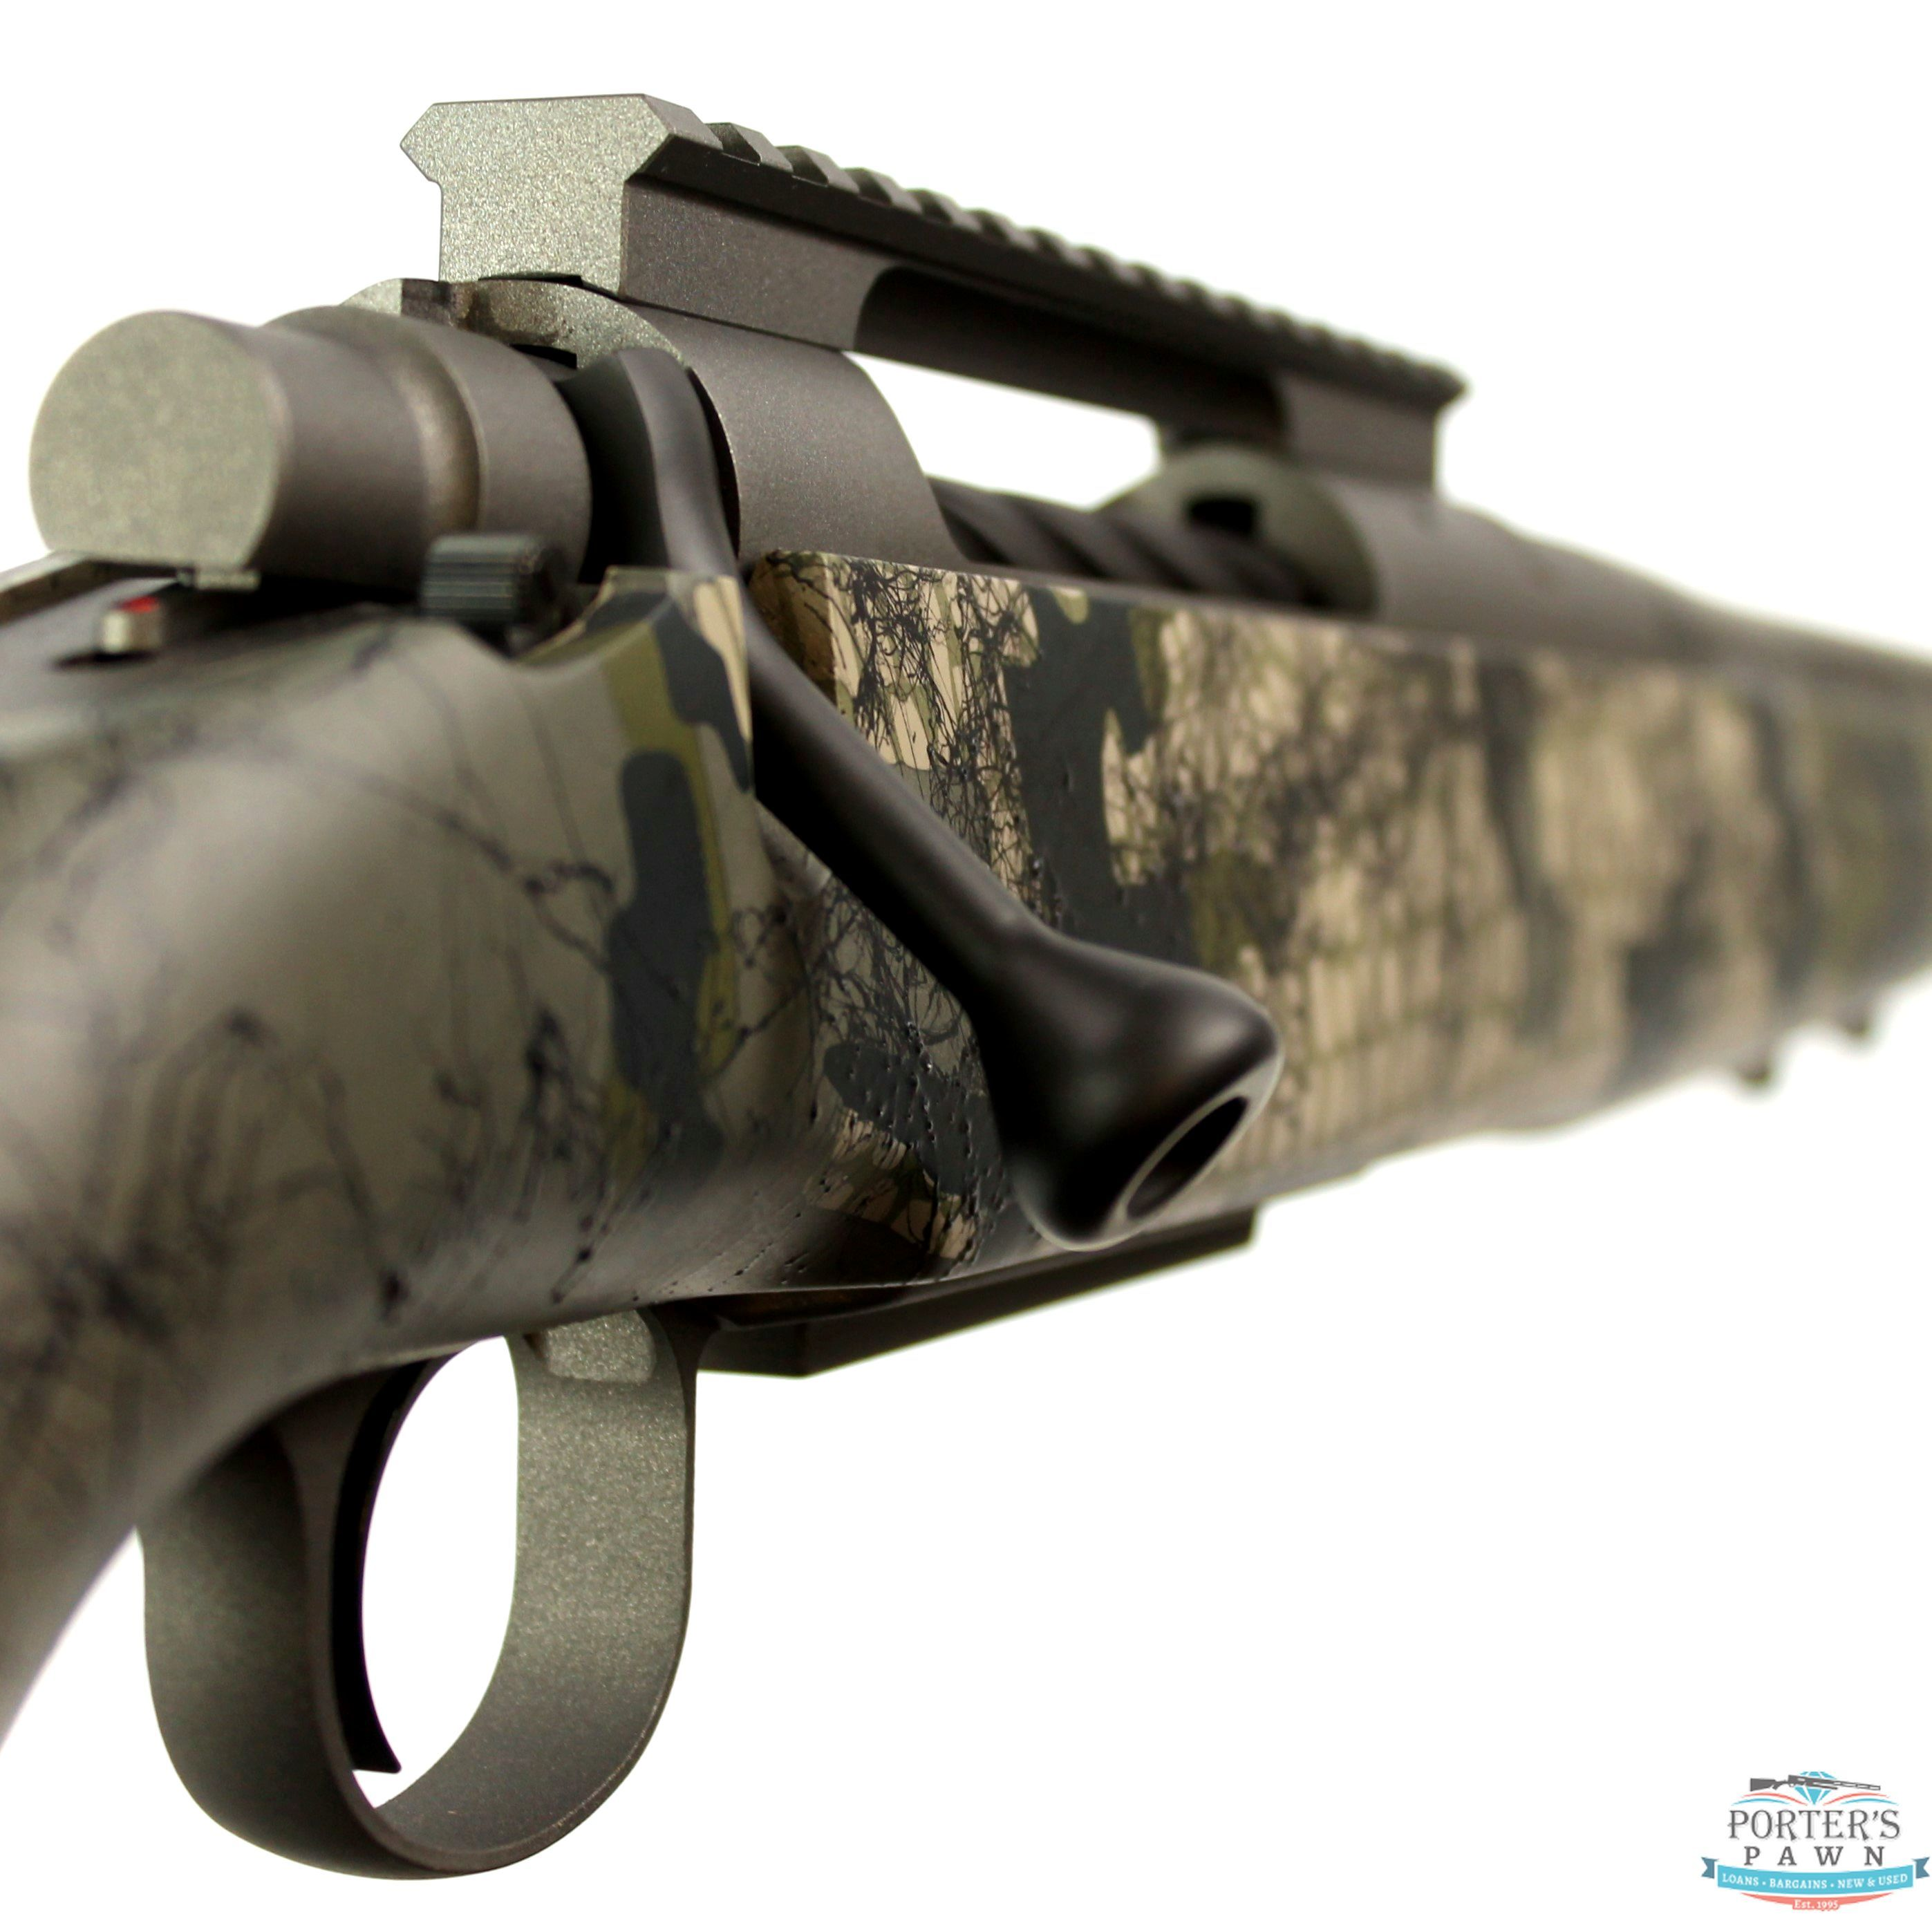 Cooper M52 Open Country LR Lightweight 7mm Rem Mag-img-0